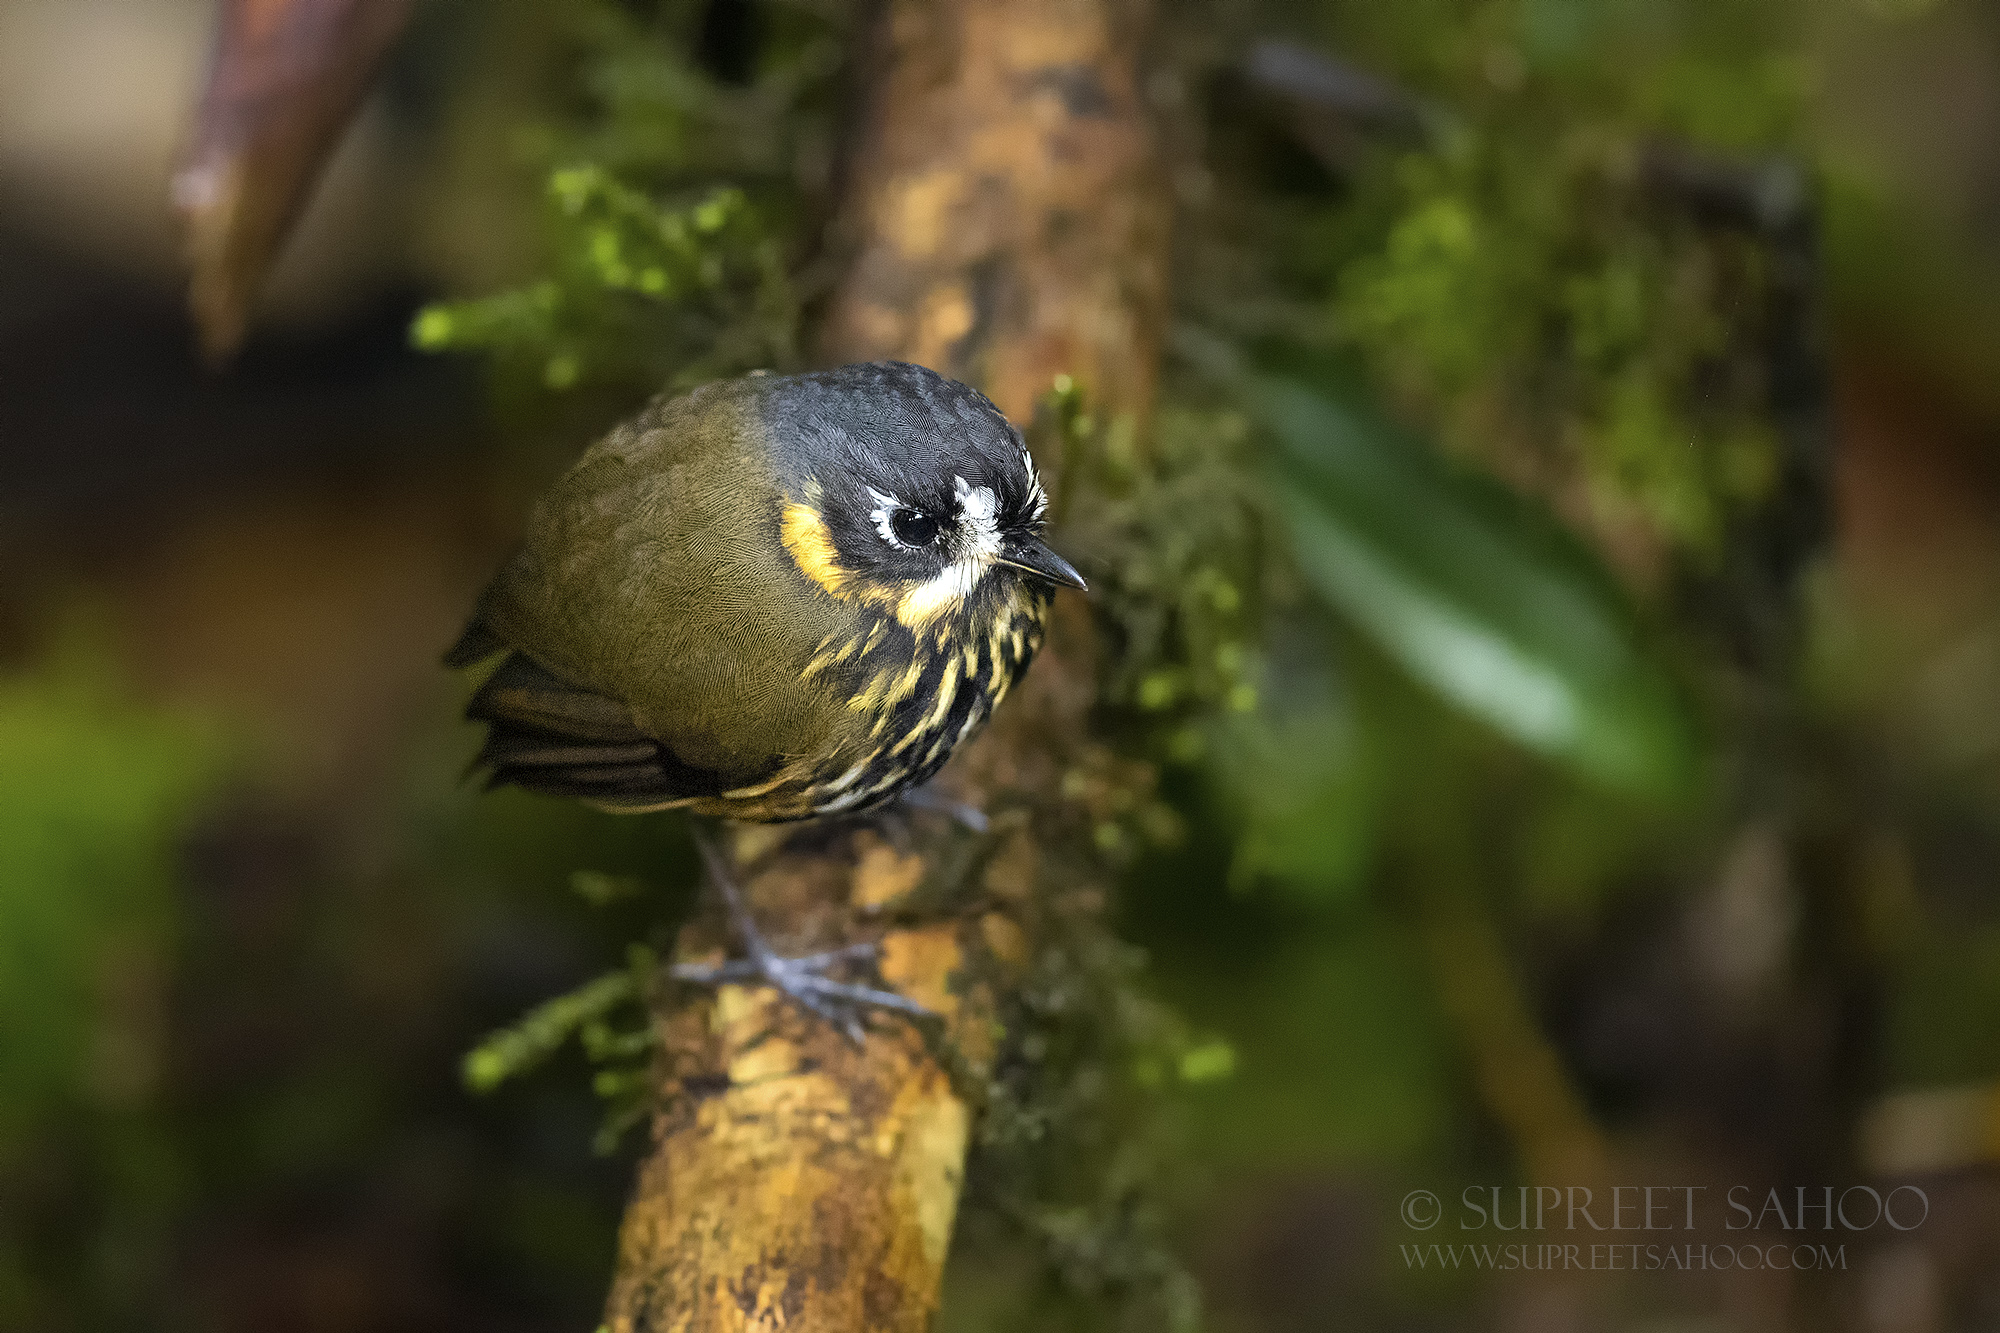 Crescent faced antpitta